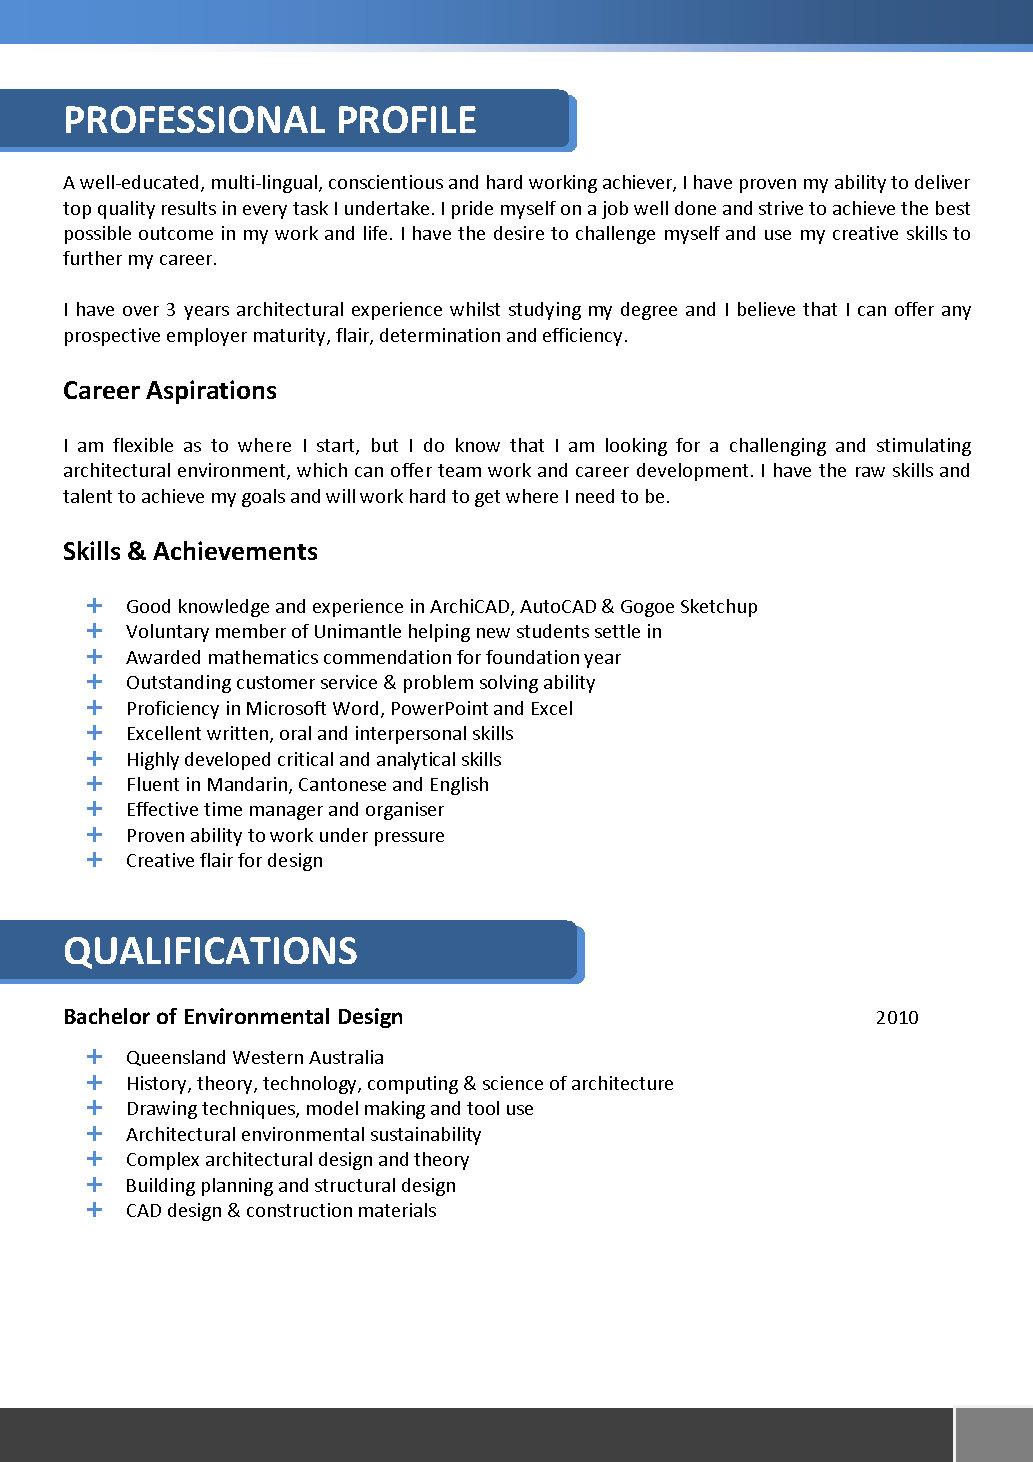 architecture resume template architects resume template 066 - How To Make The Best Resume Possible